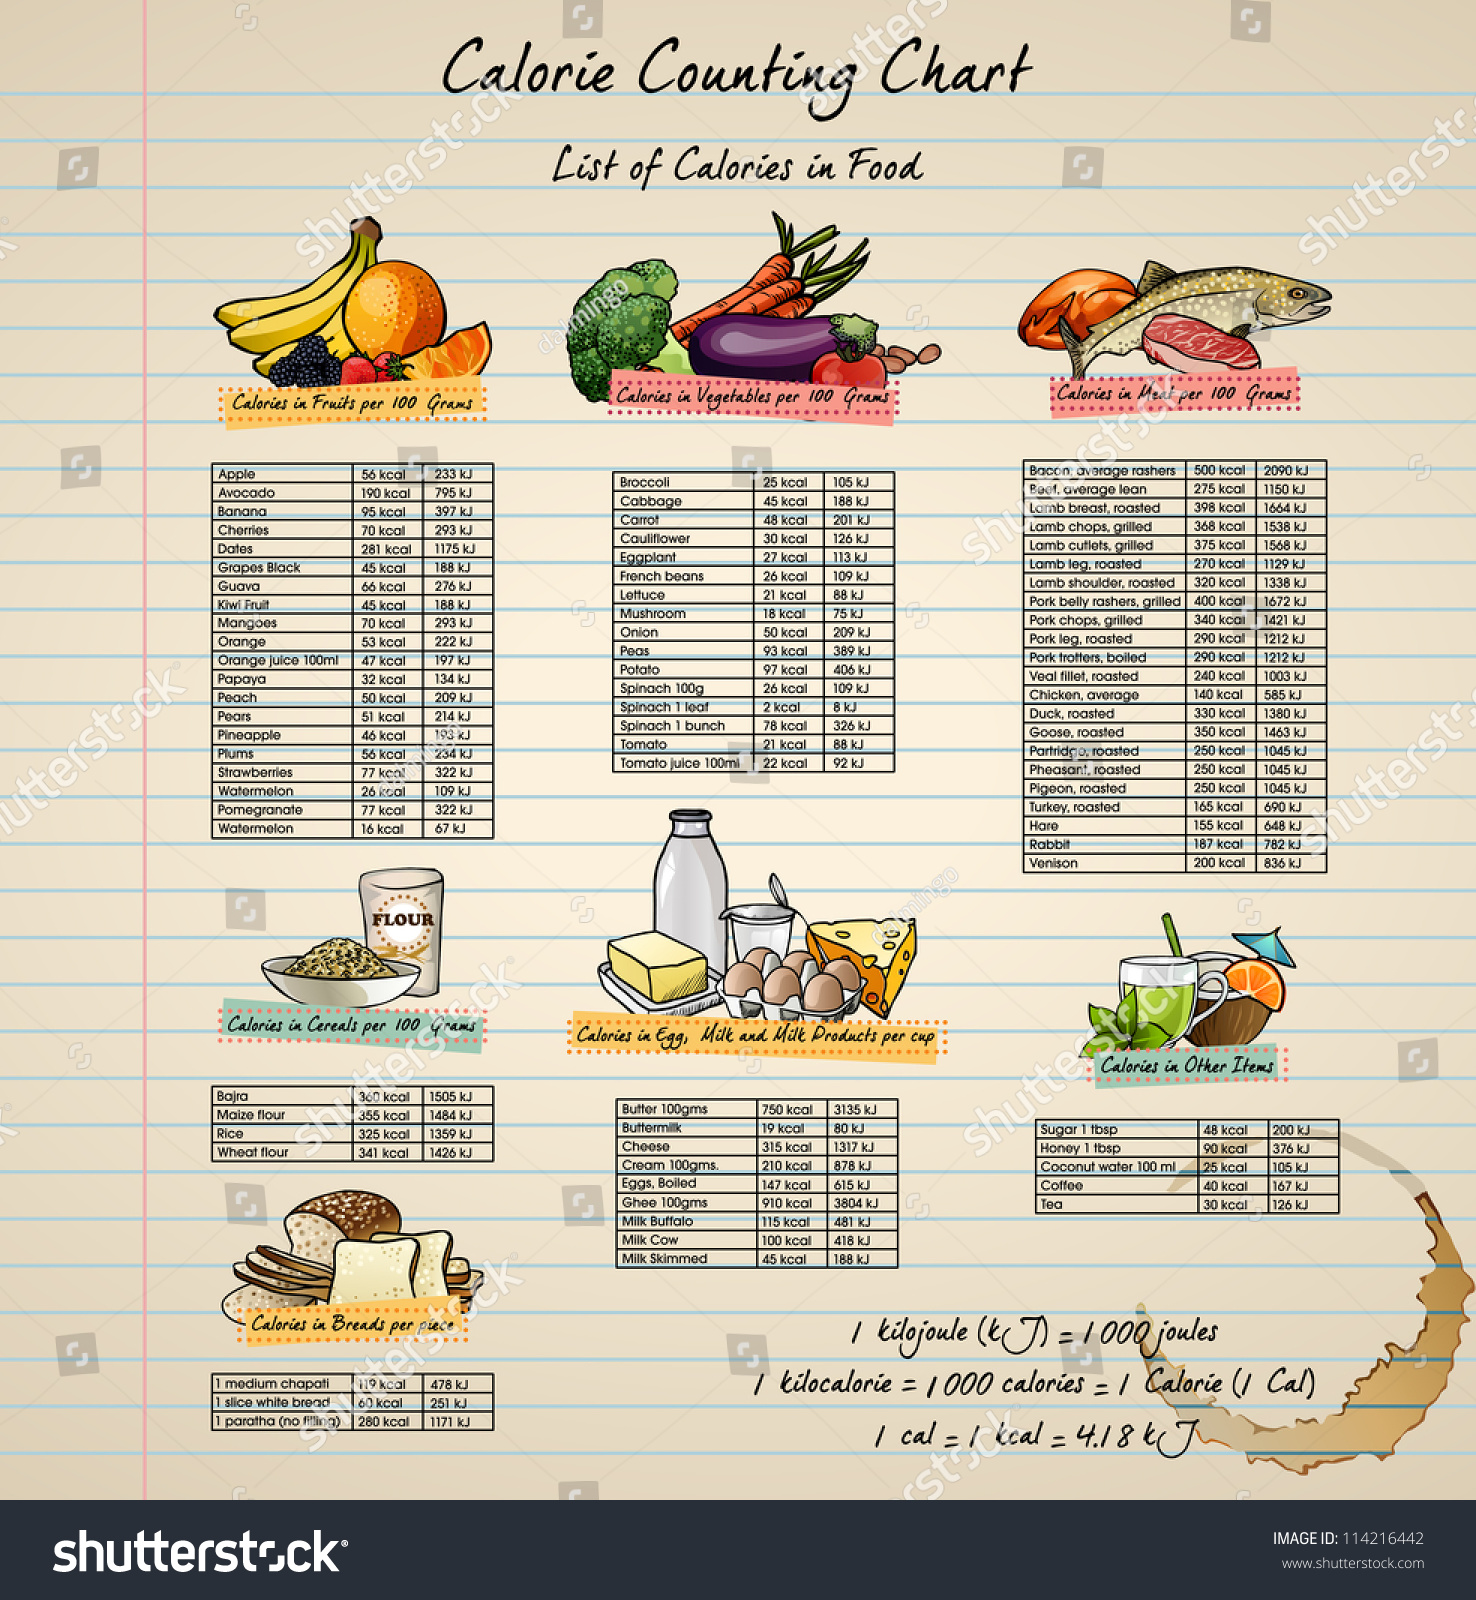 a z calorie chart Free printable calorie counter chart to help you easily keep up with the food you eat.